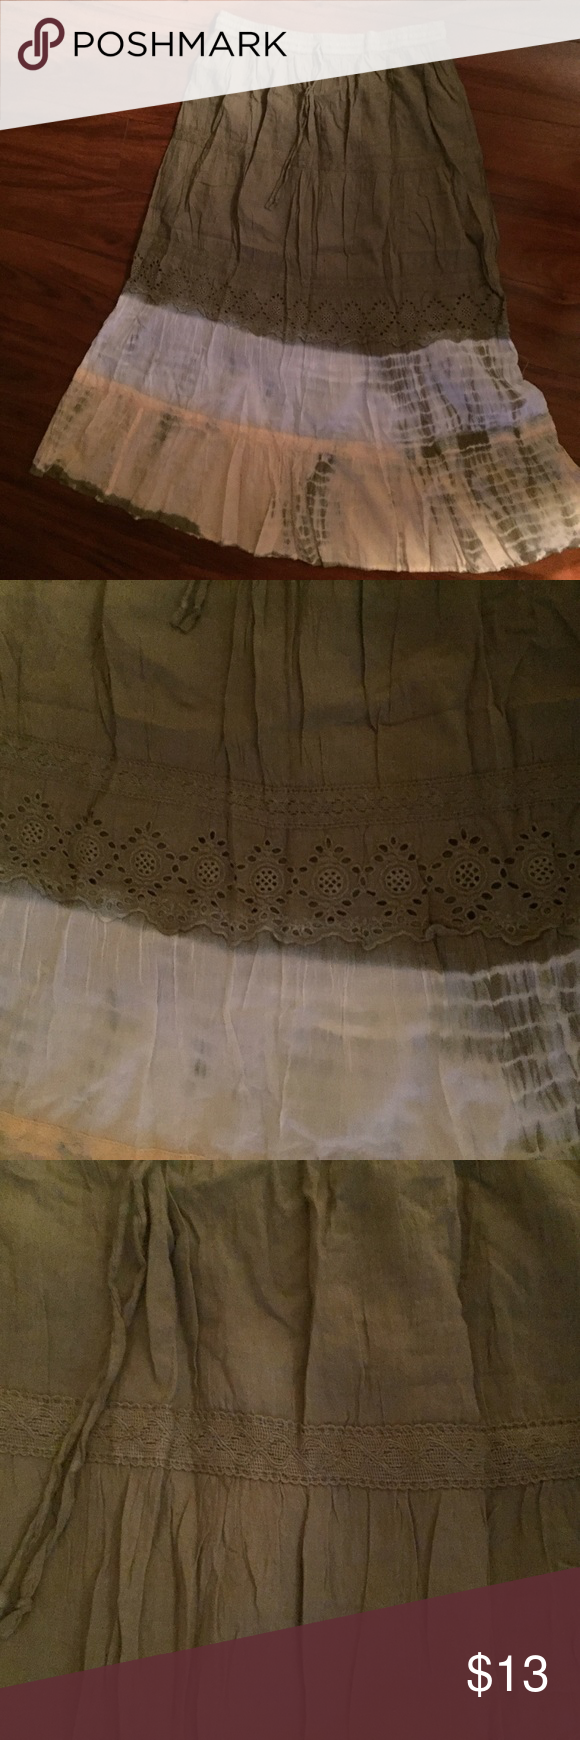 Long Skirt Beautiful detailed long skirt. Elastic waist band. Gently used. Home is pet and smoke free. Last picture shows stains.  100% Cotton Size: Large Skirts Maxi